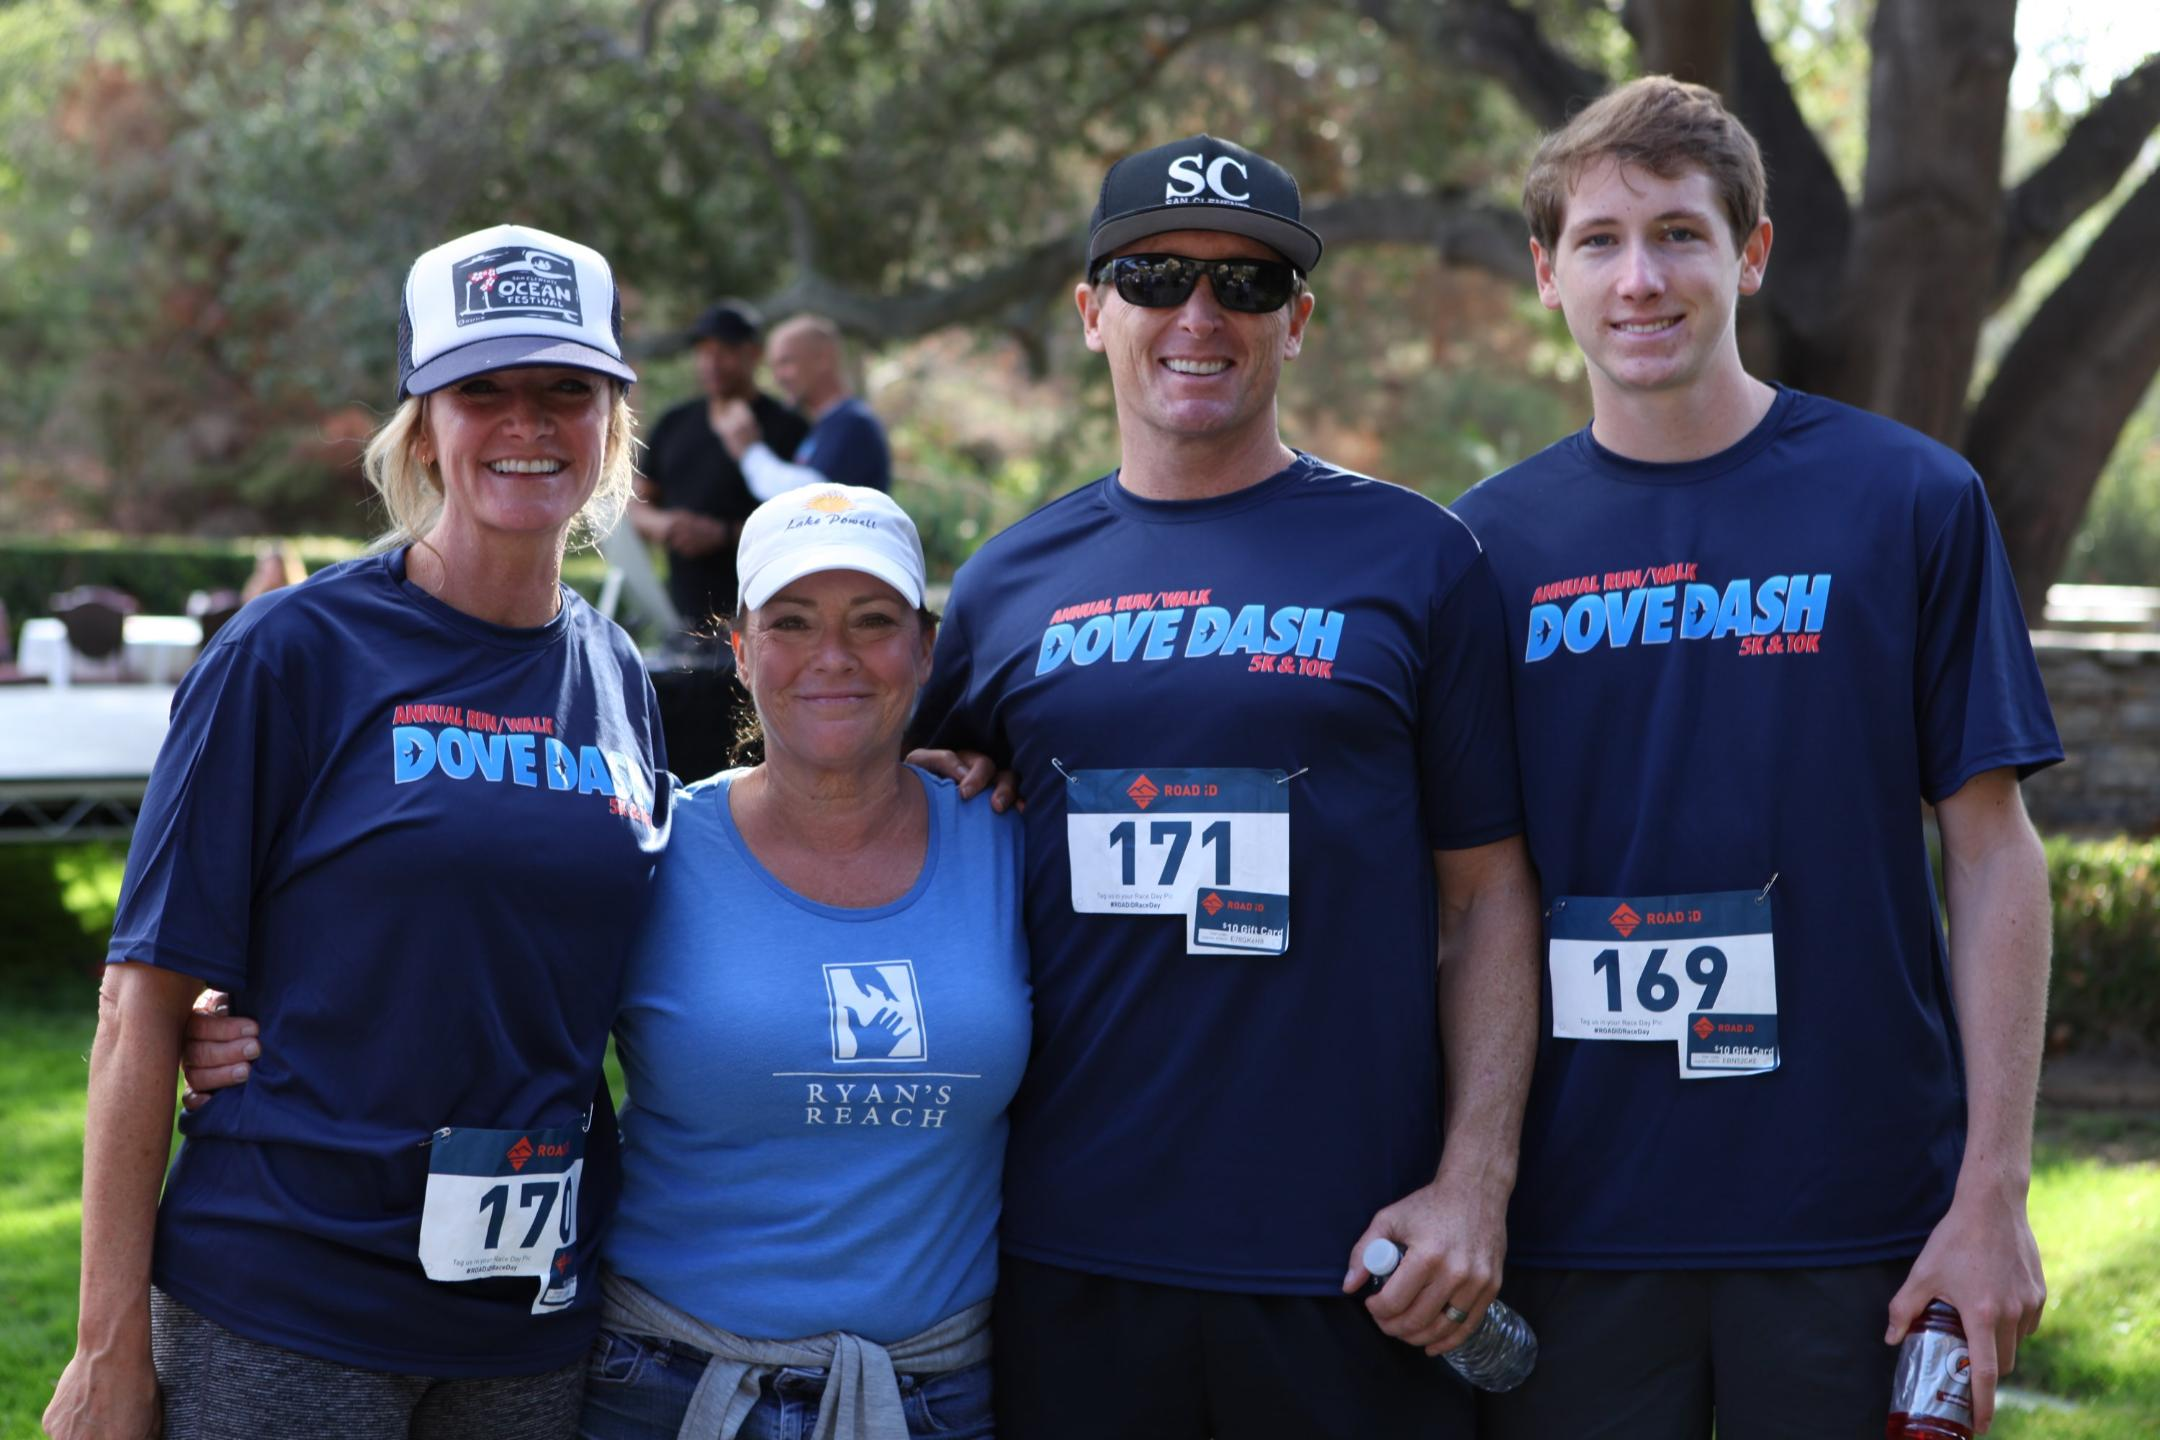 Laura Lee Fekete (2nd from left)